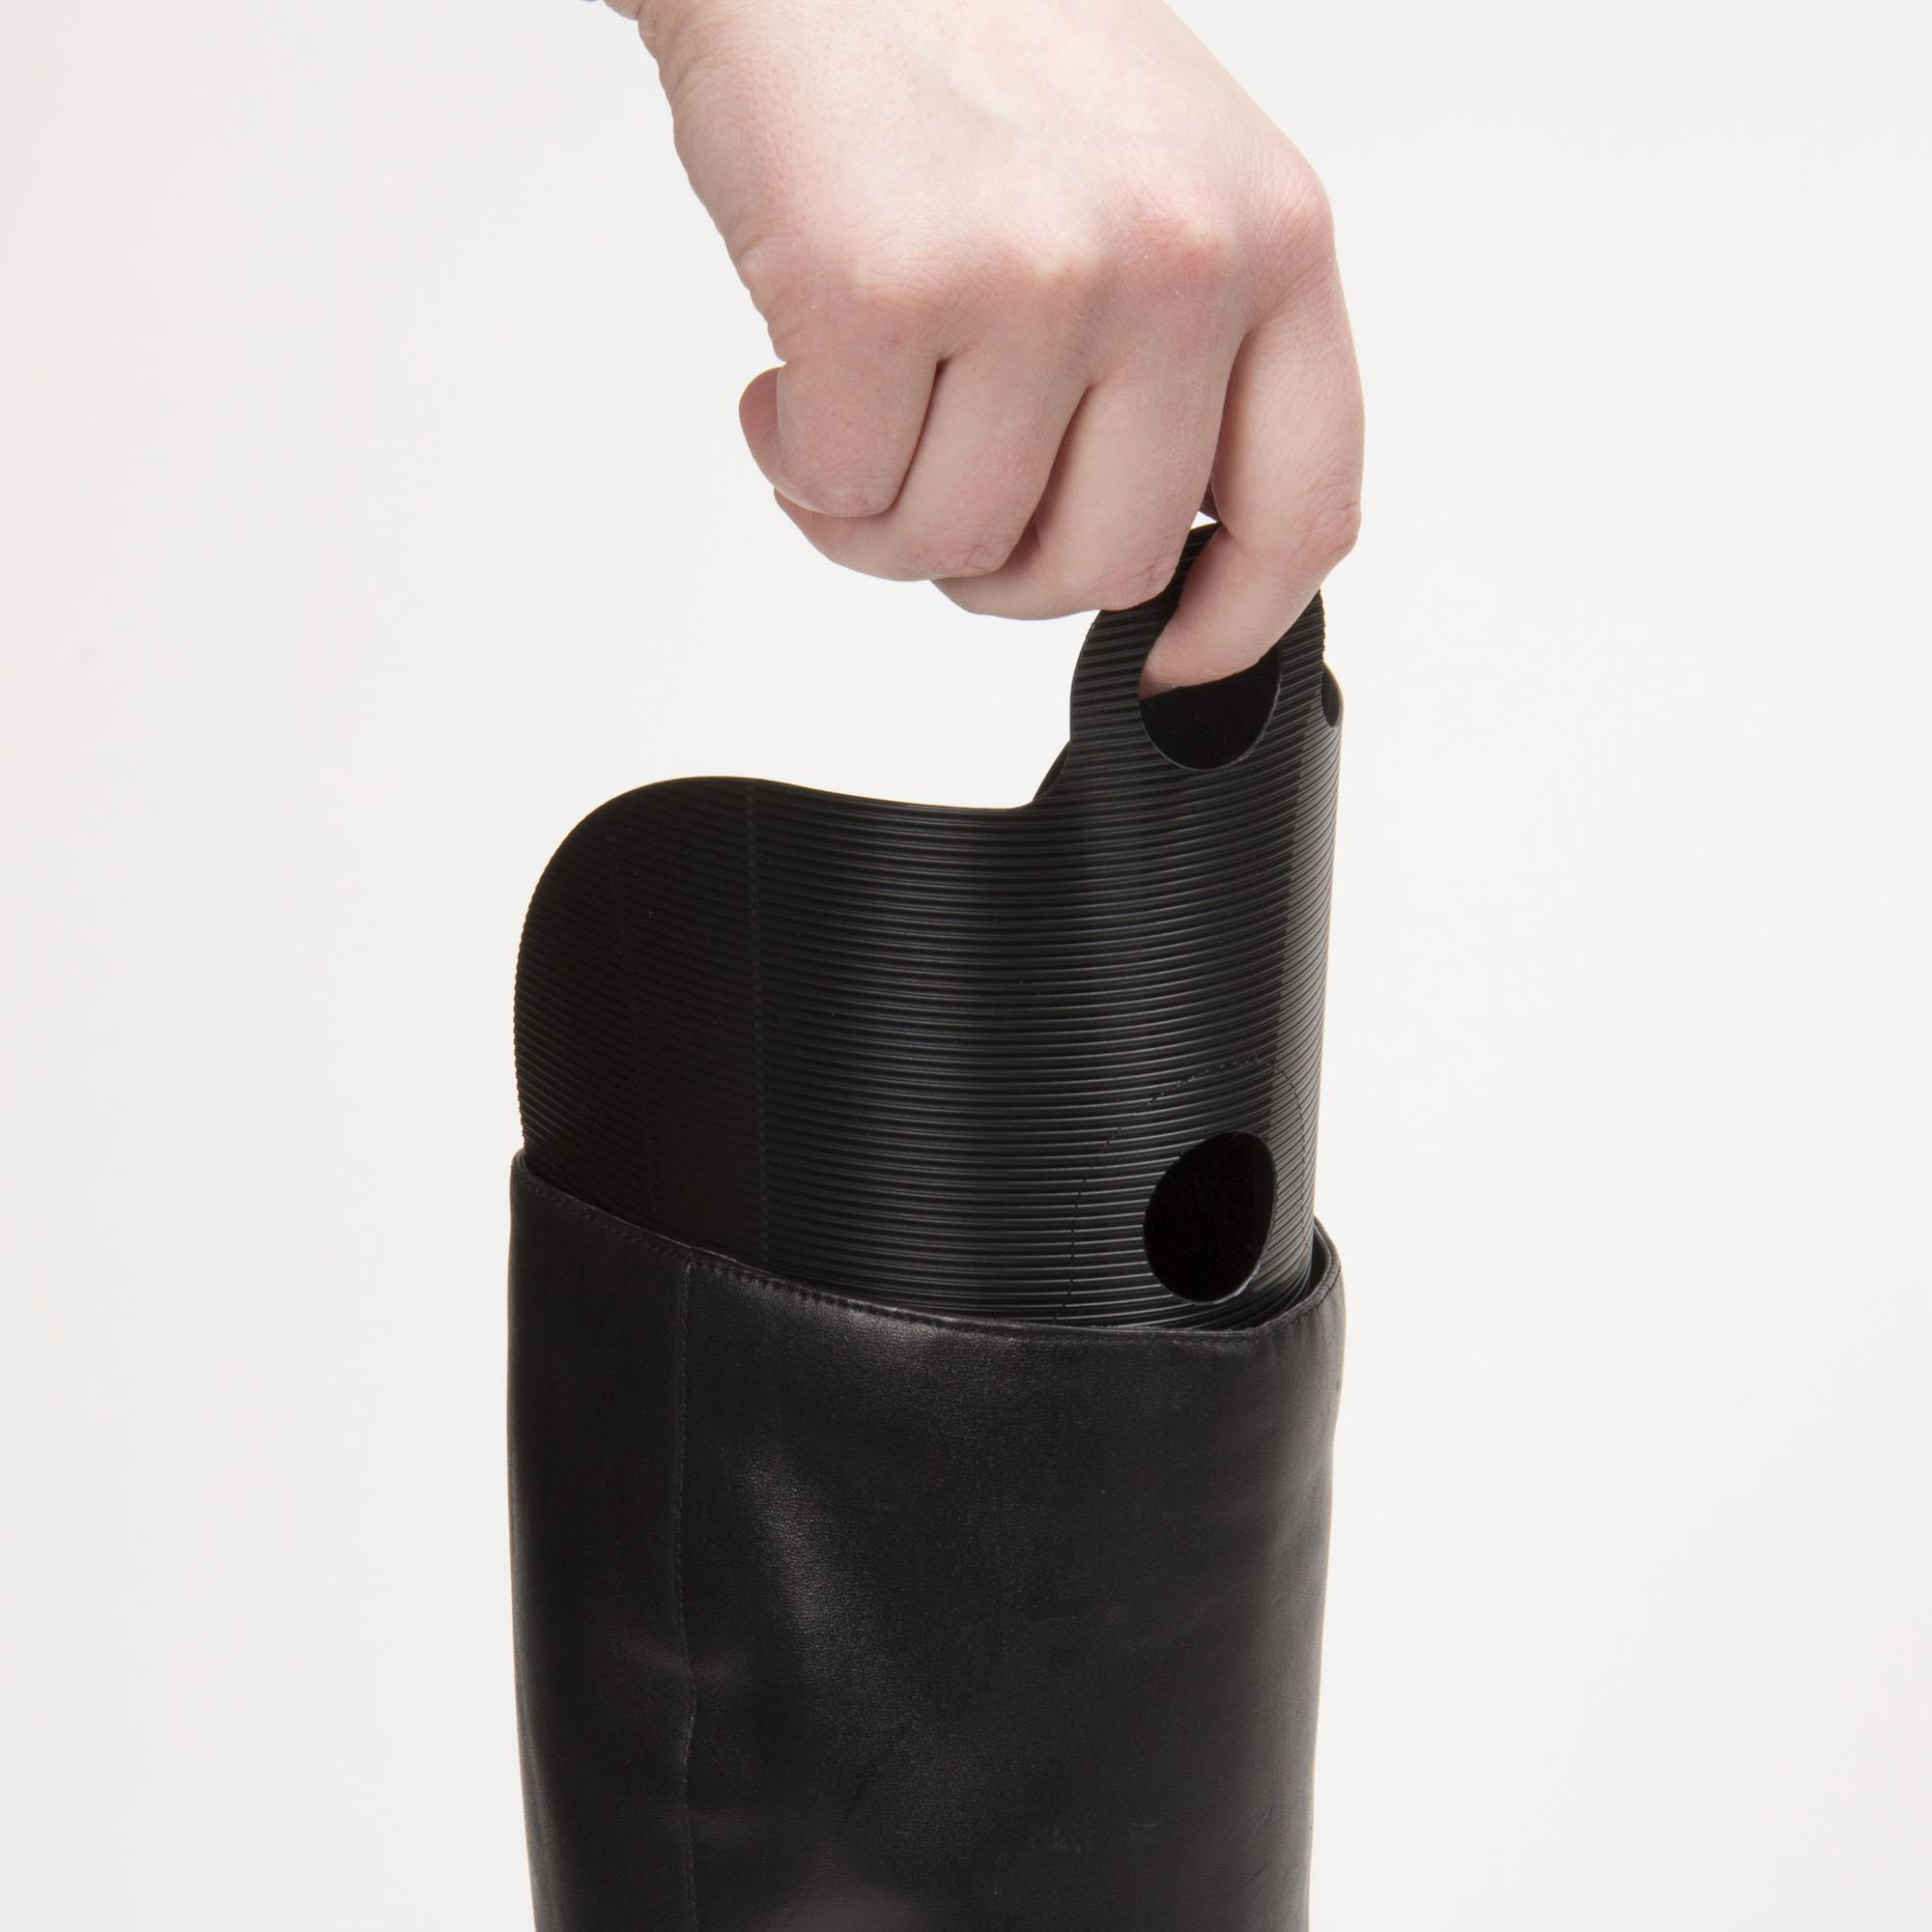 Amazon.com: Household Essentials CedarFresh Boot Shapers, 2 pairs: Home & Kitchen